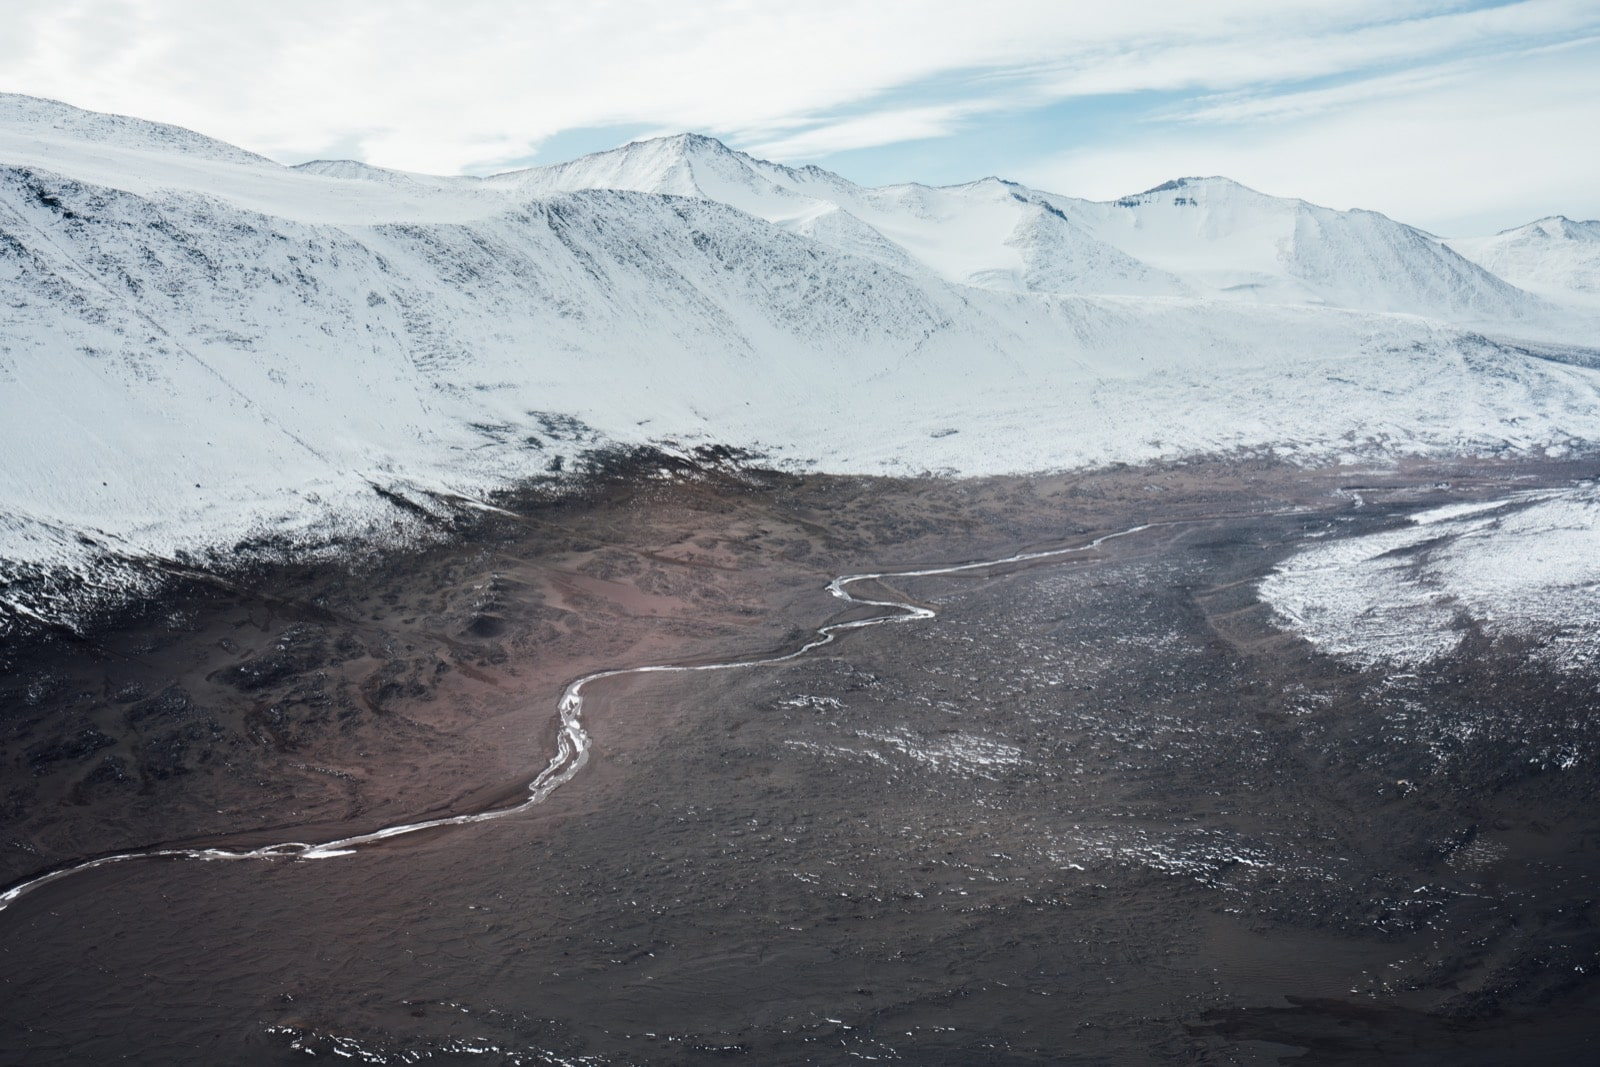 an ariel shot of a winding stream in a valley between snowcapped mountains